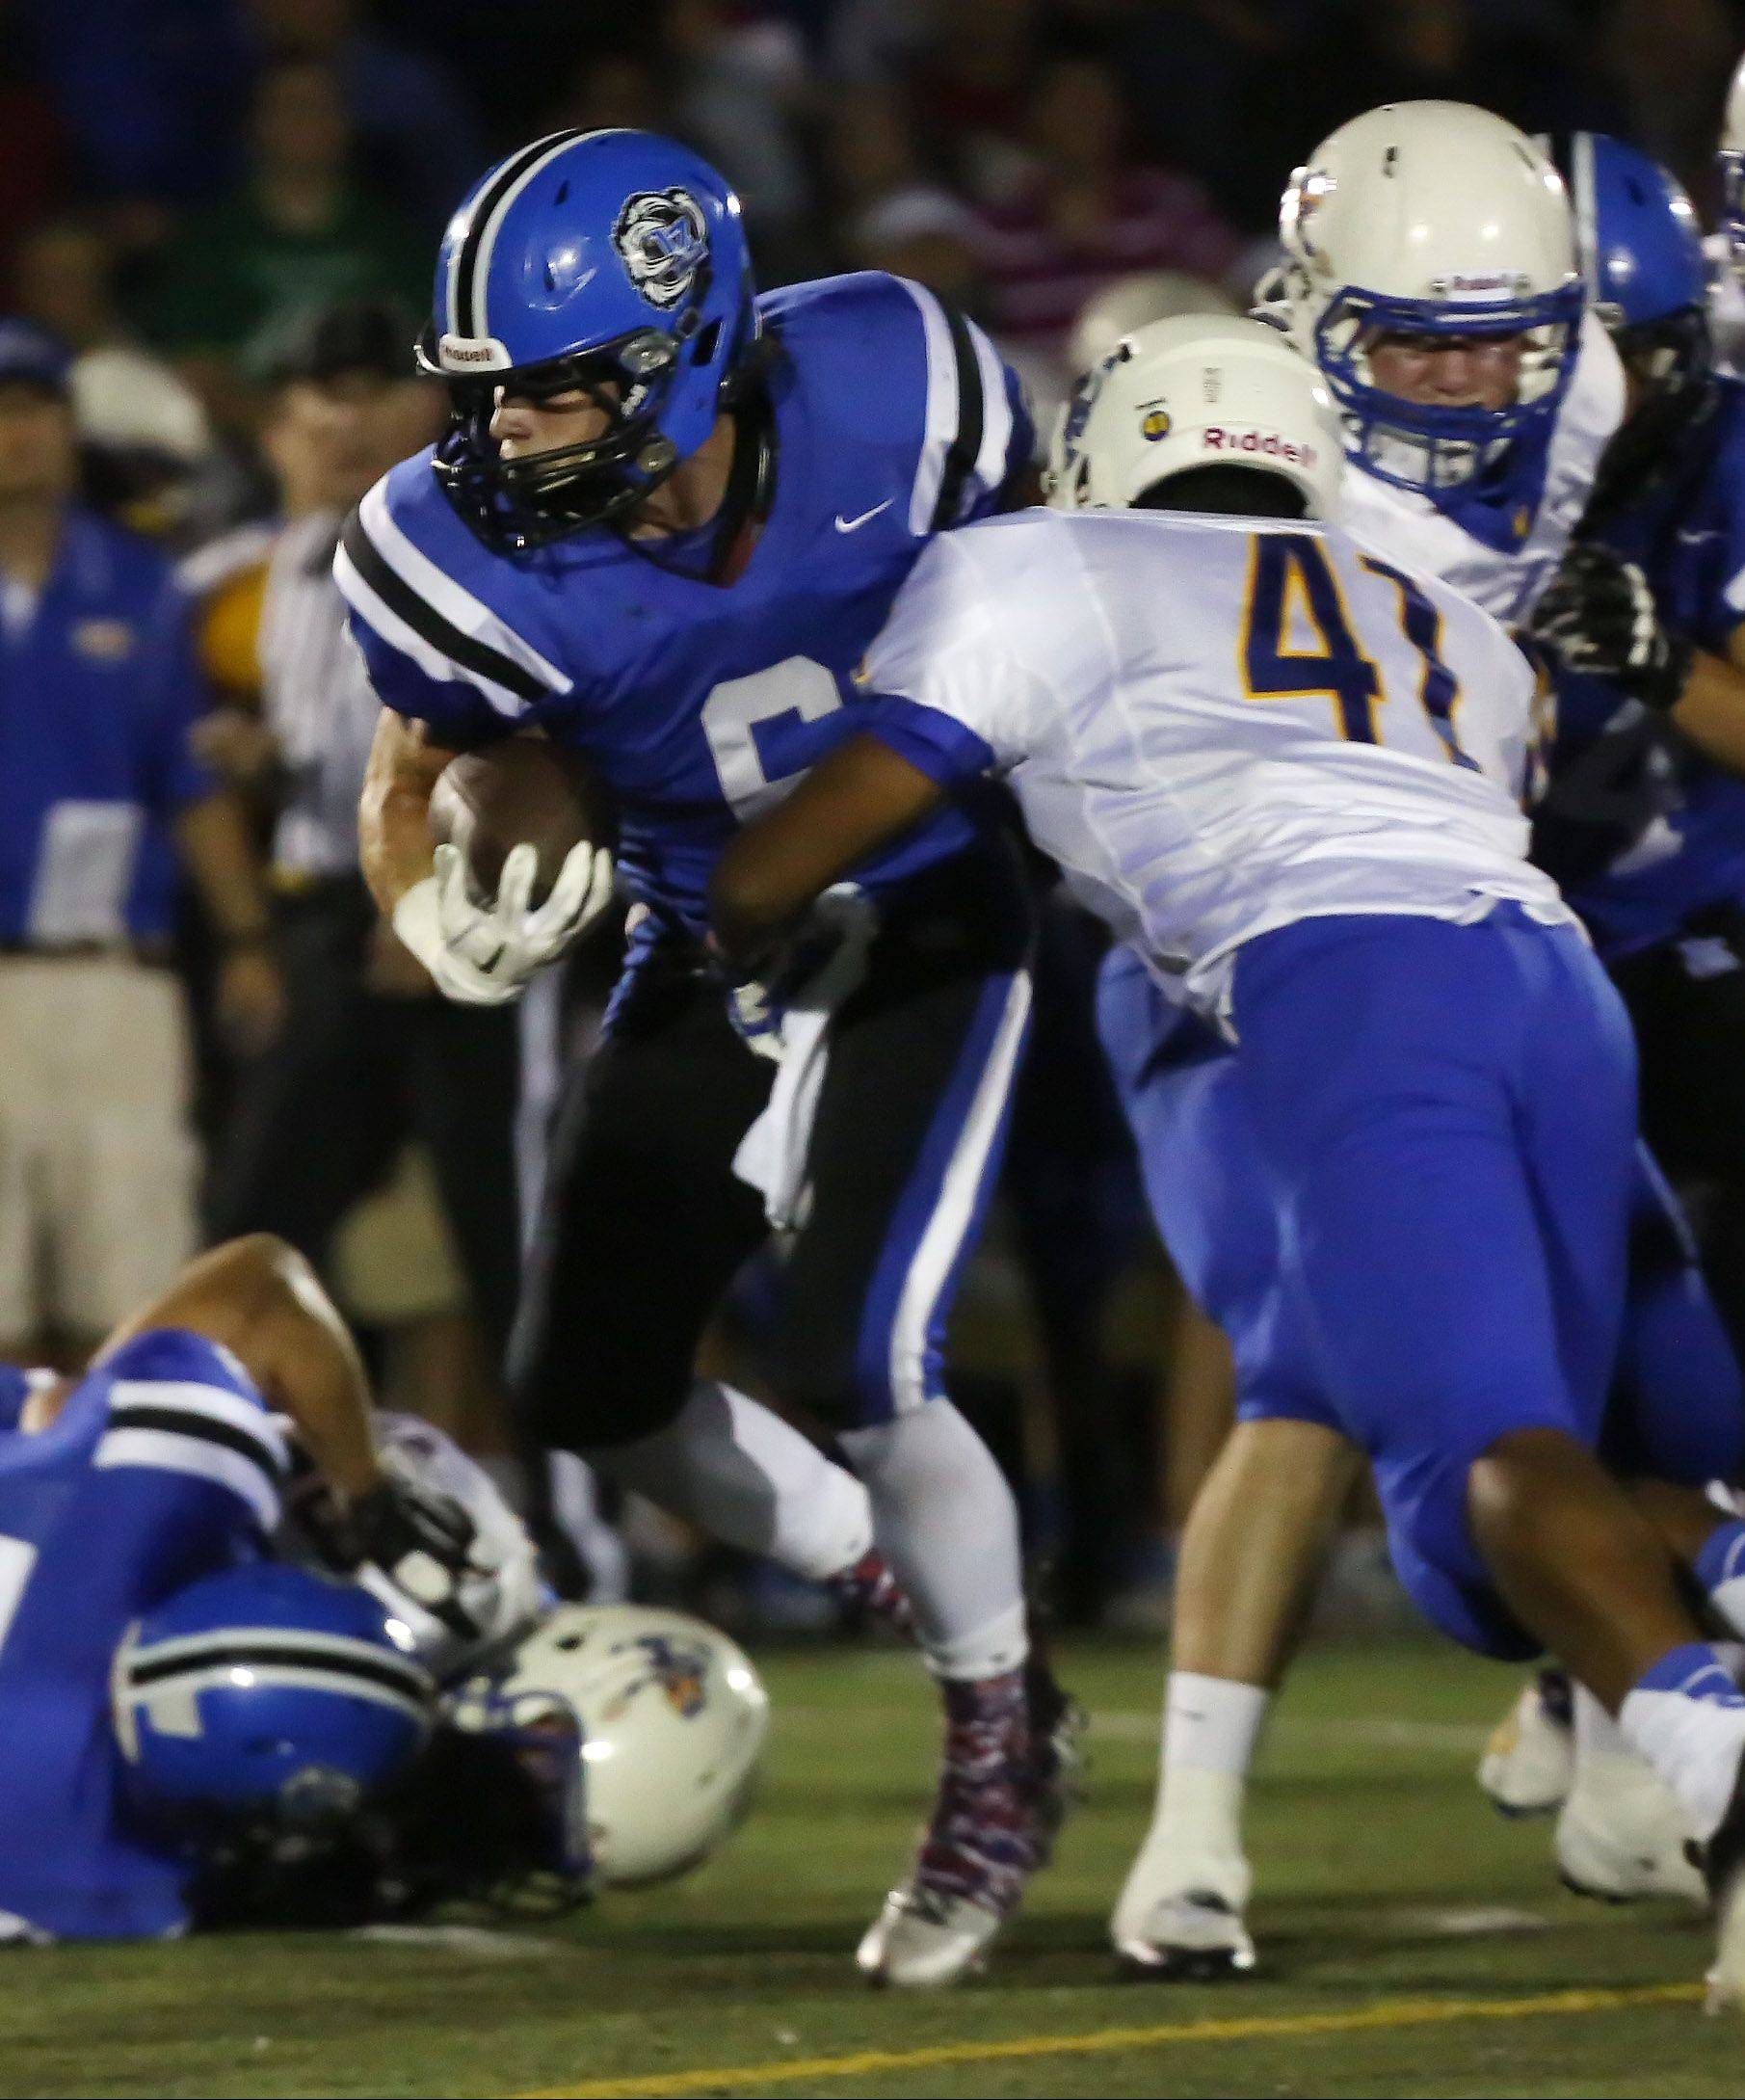 Lake Zurich running back Sean Lynch breaks an attempted tackle by Warren linebacker Zhane Garcia on the way to a first-quarter touchdown Thursday at Lake Zurich.